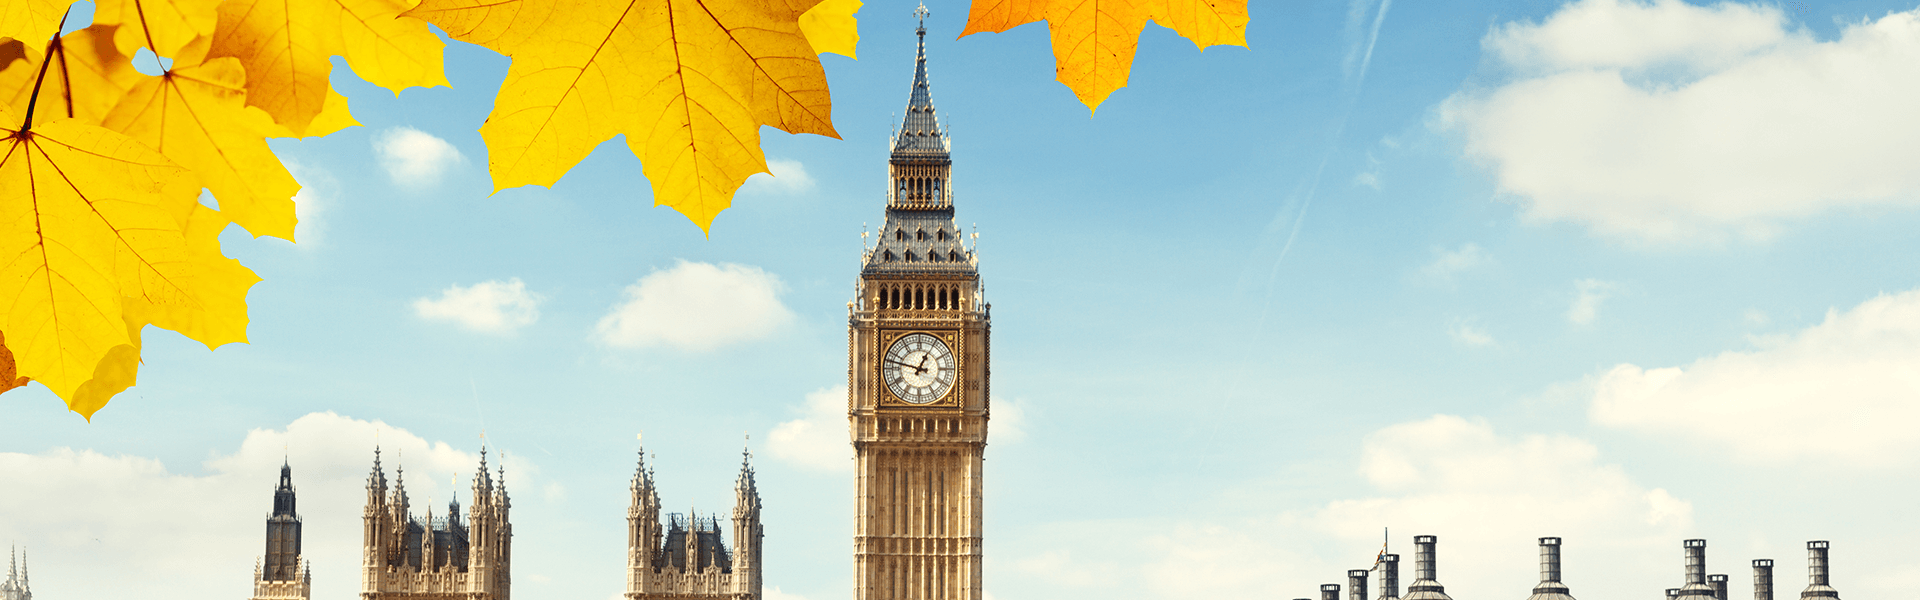 Autumn leaves framing the Houses of Parliament and Big Ben